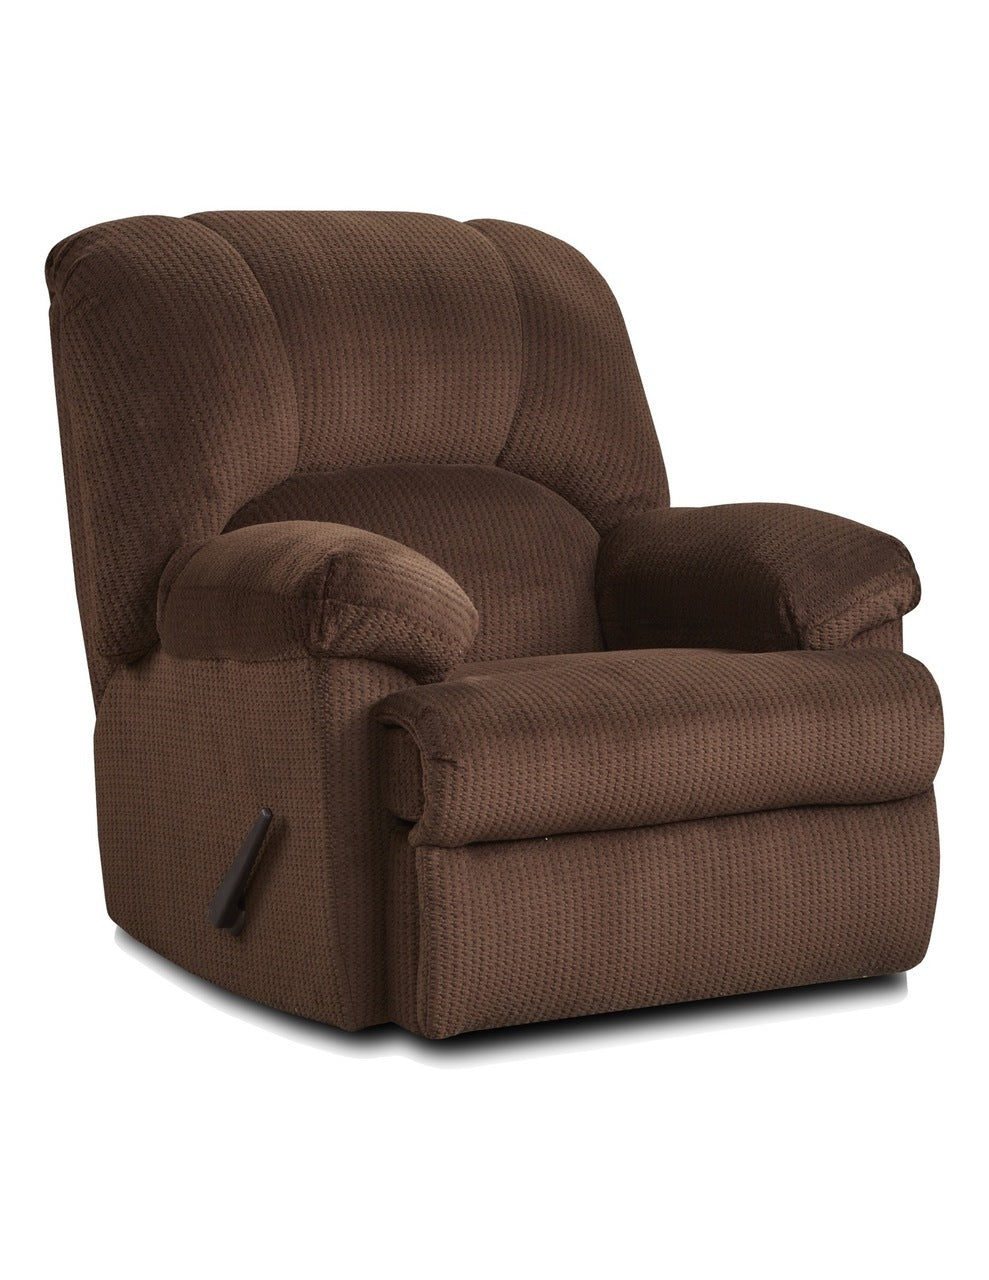 Feel Good Chocolate Recliner